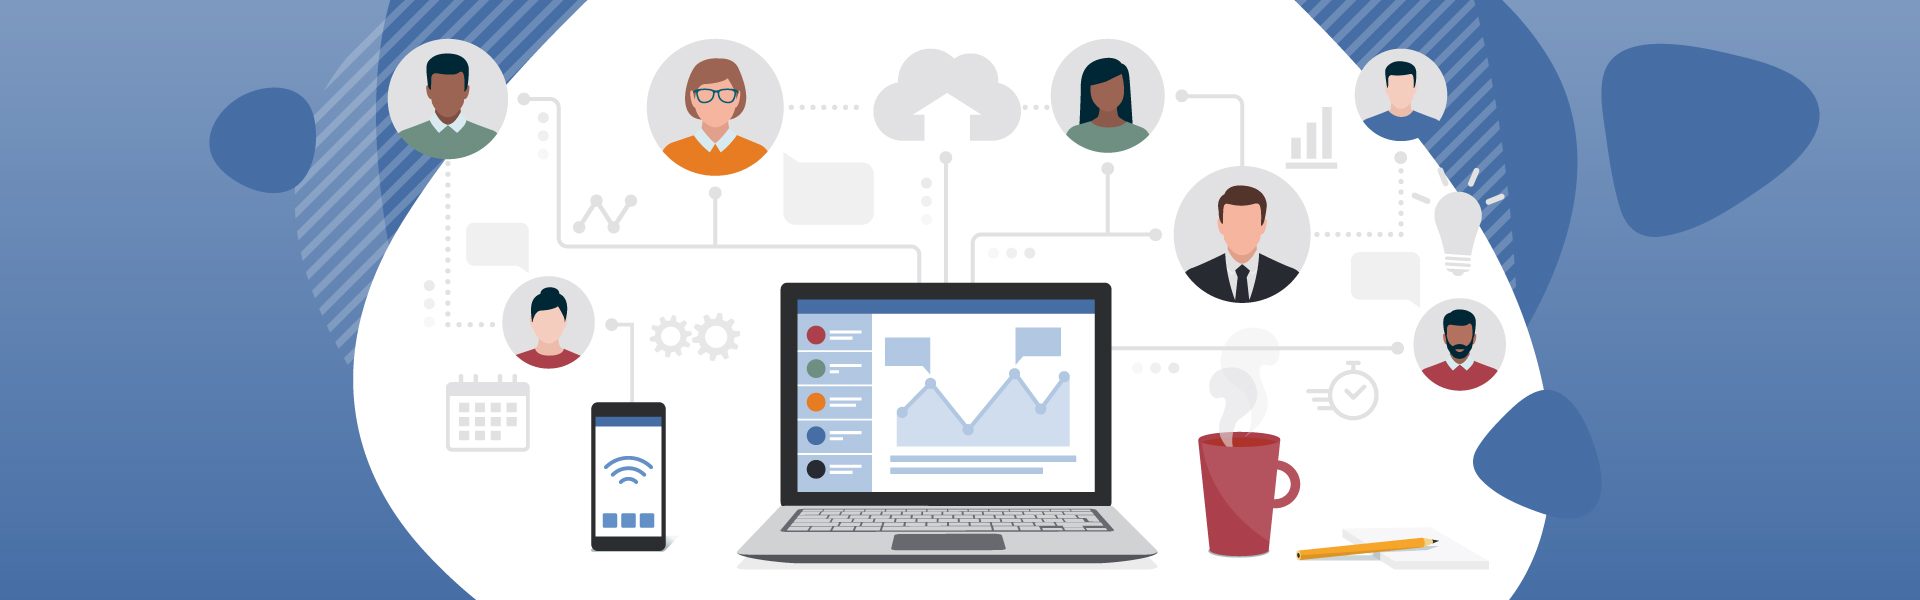 How to Network Effectively When Working Remotely